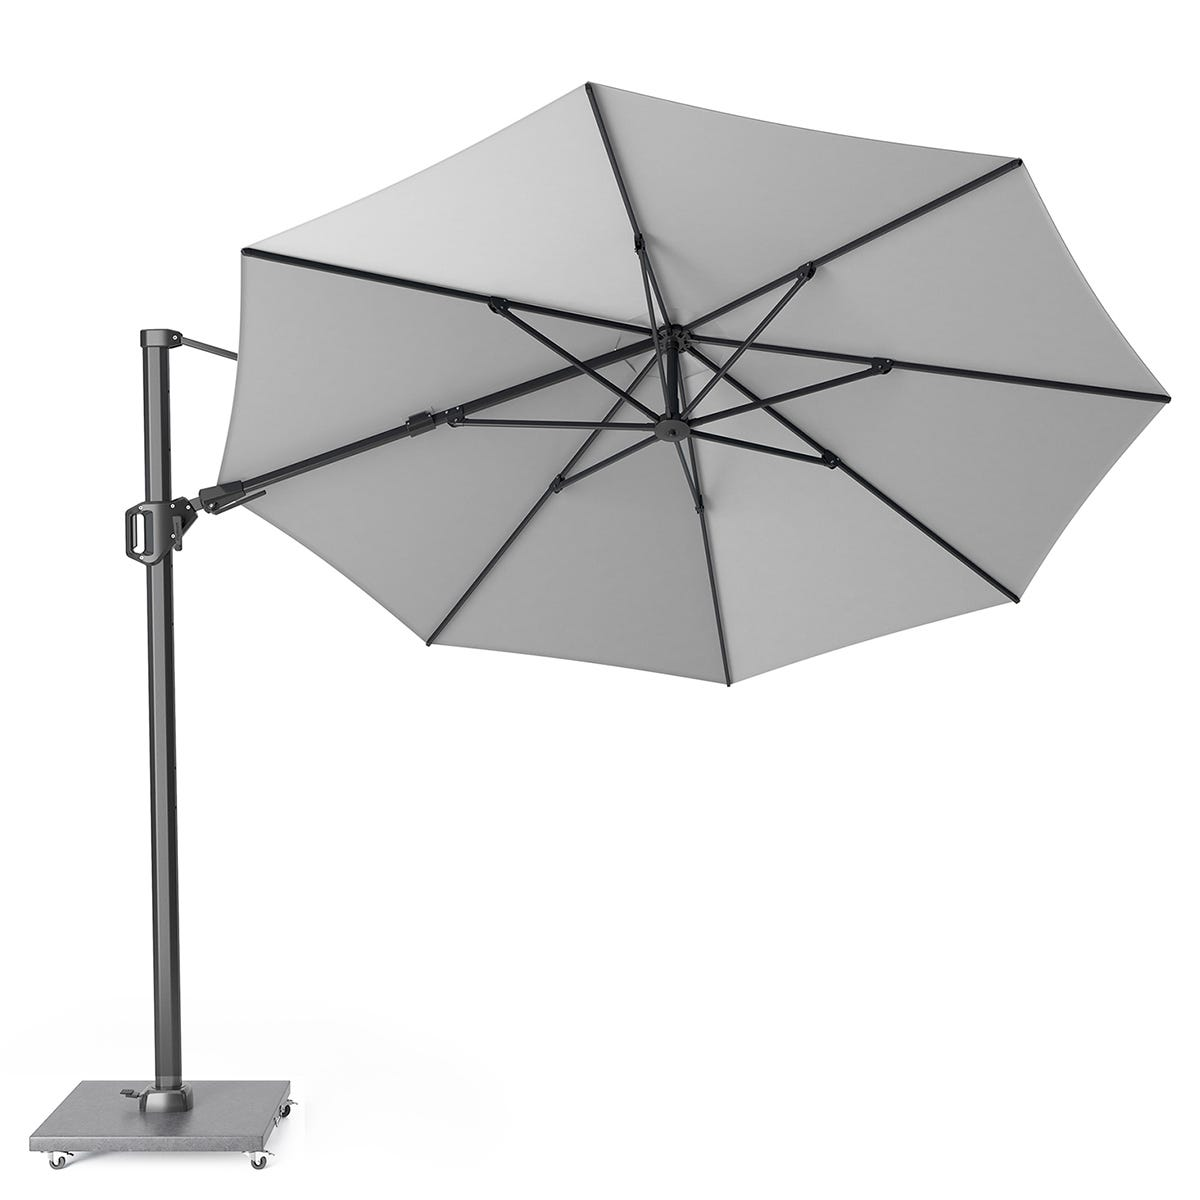 Pacific Lifestyle Challenger T2 3.5m Round Luna Grey Parasol with Hammered Grey Granite 90kg Wheeled Base